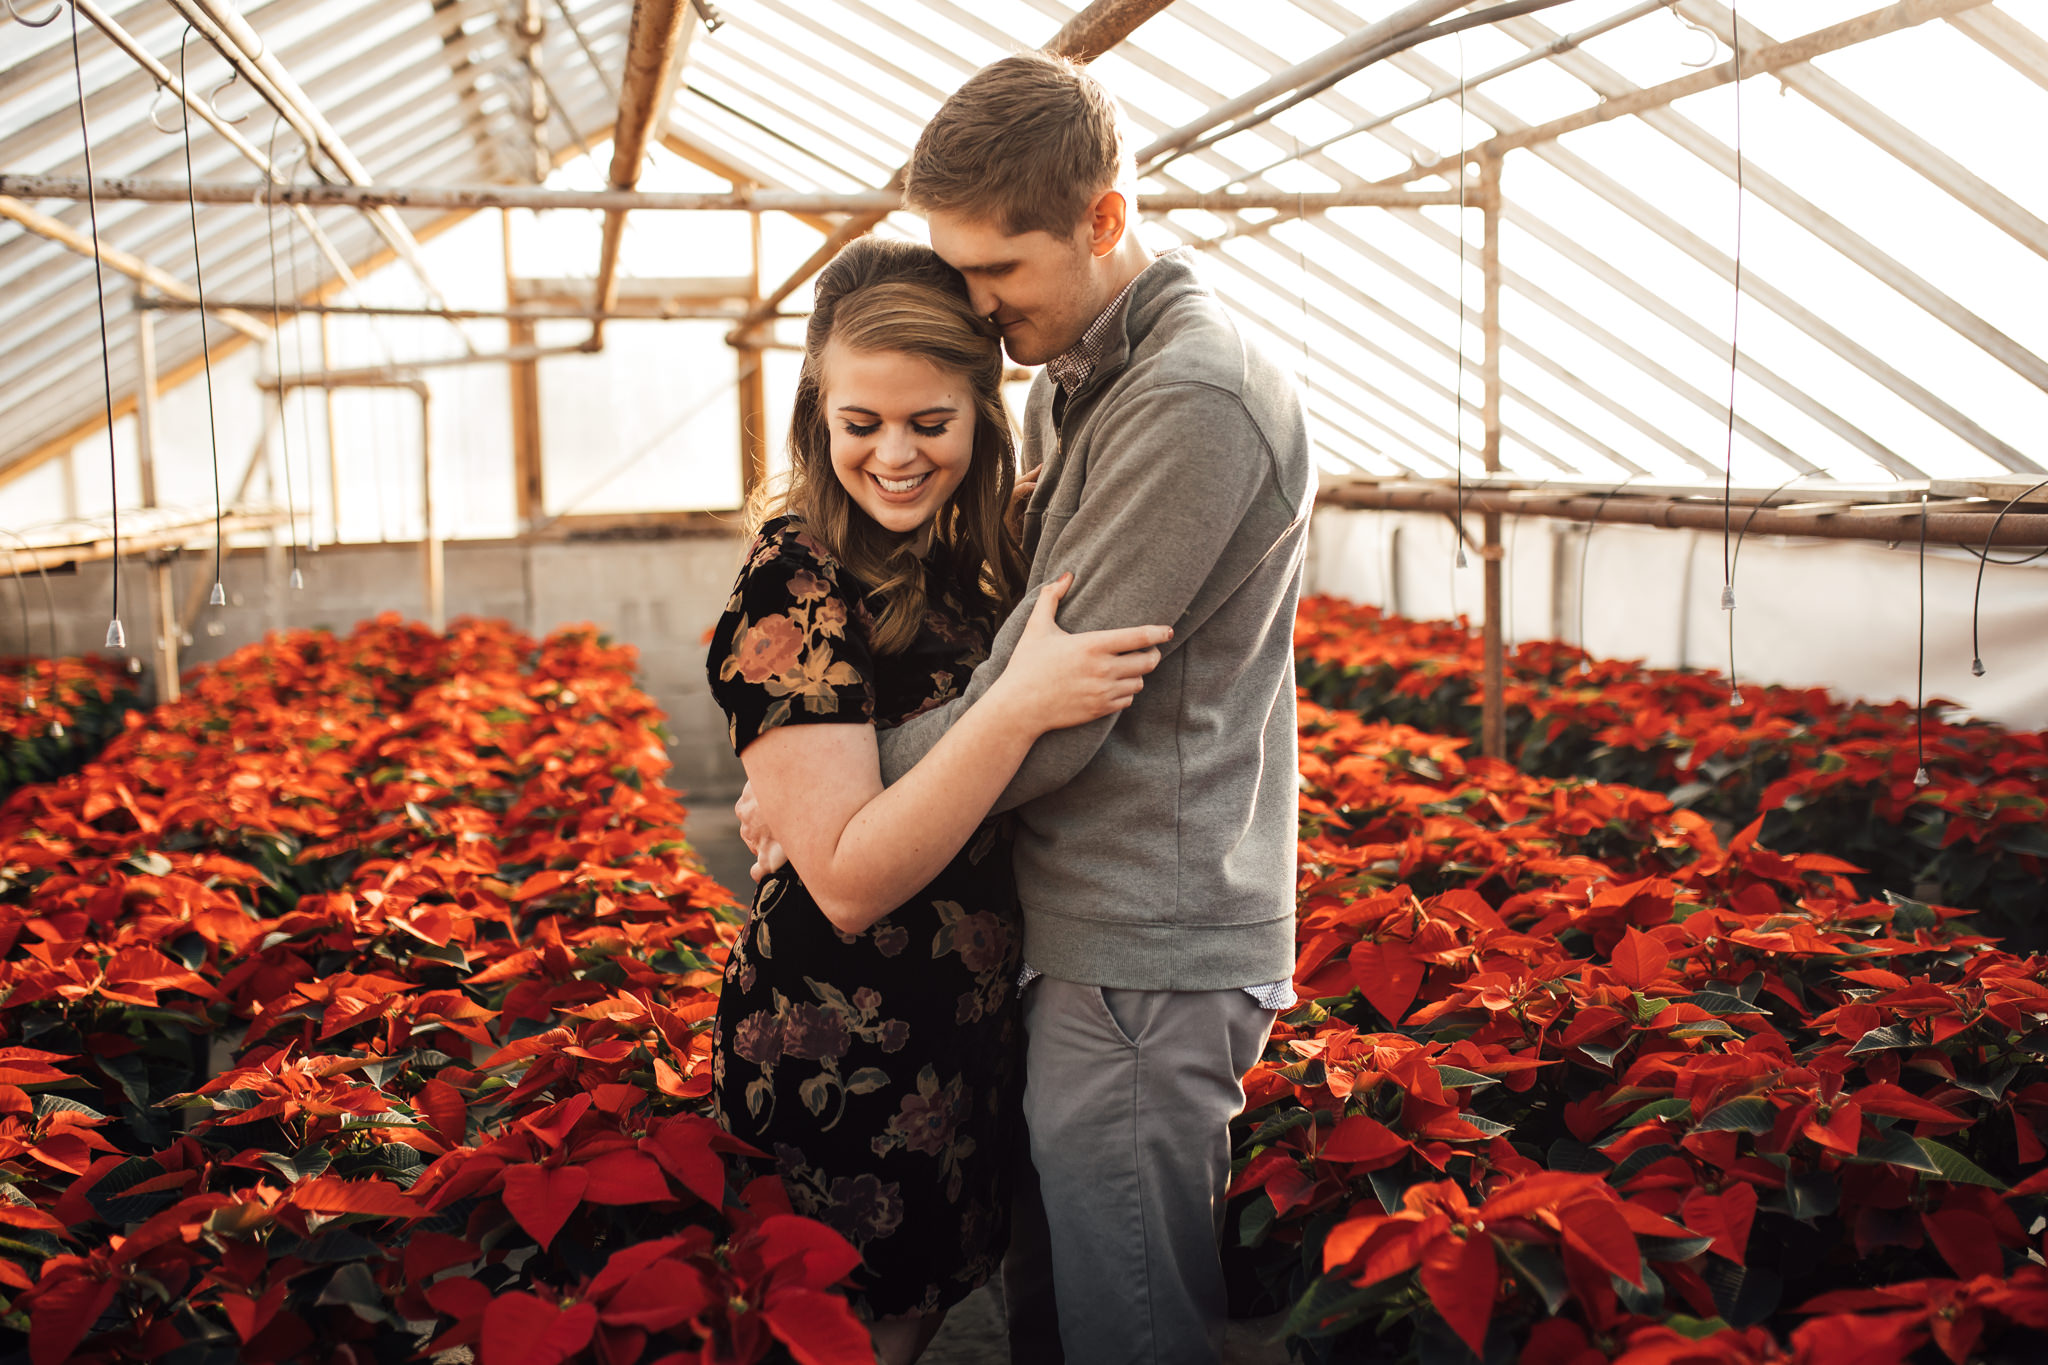 memphis-wedding-photographer-greenhouse-engagement-pictures-cassie-cook-photography-27.jpg